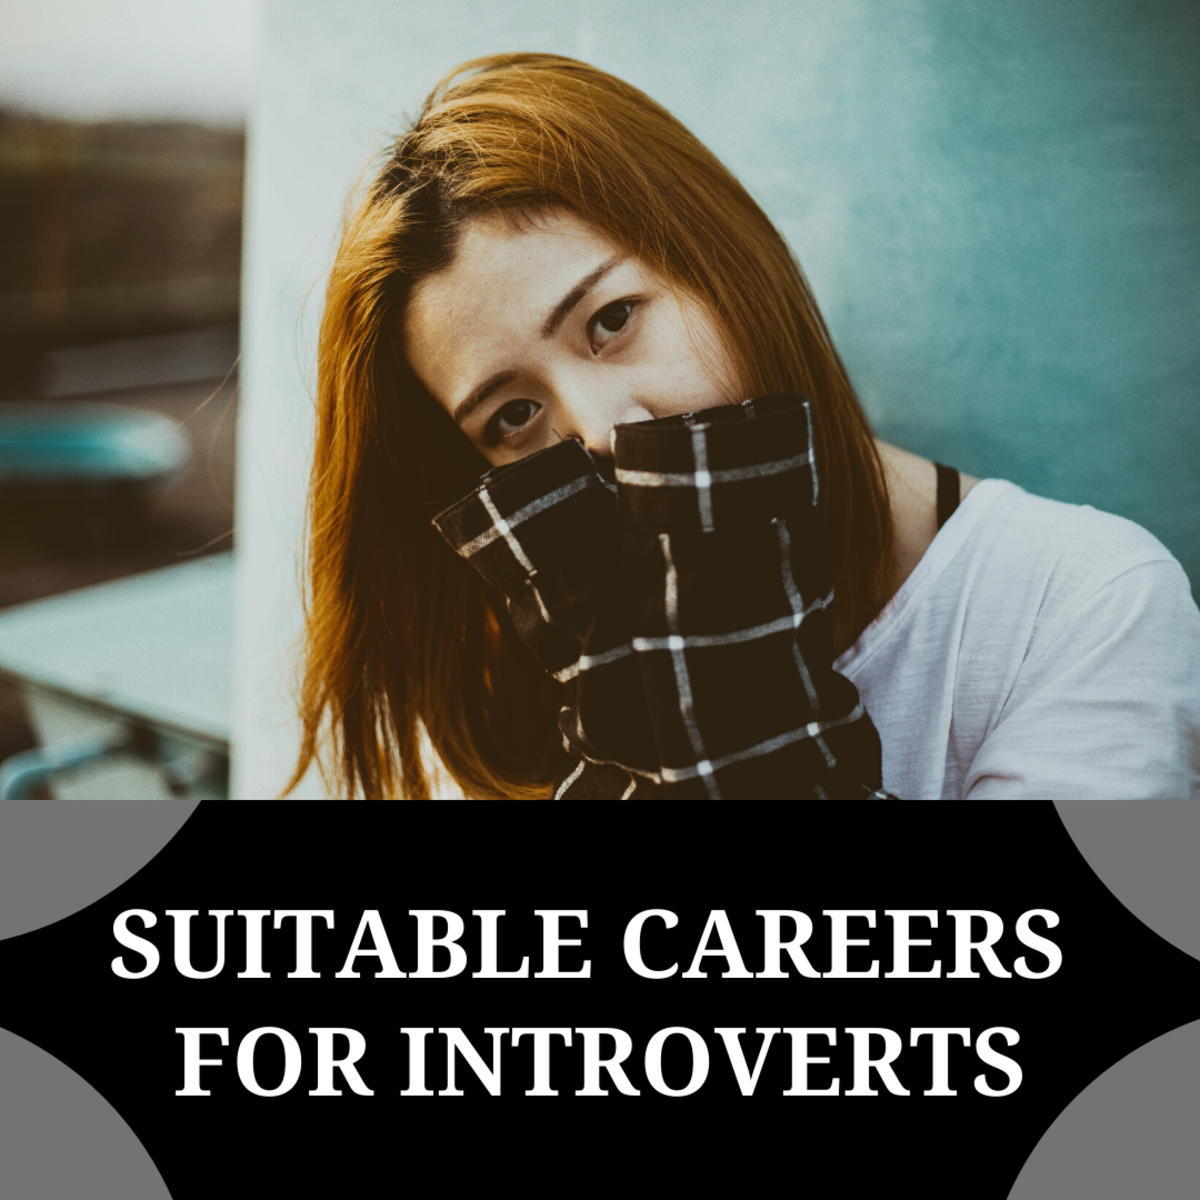 Hiring introverts can be beneficial to many different industries. Read on to find out what career is best for you.